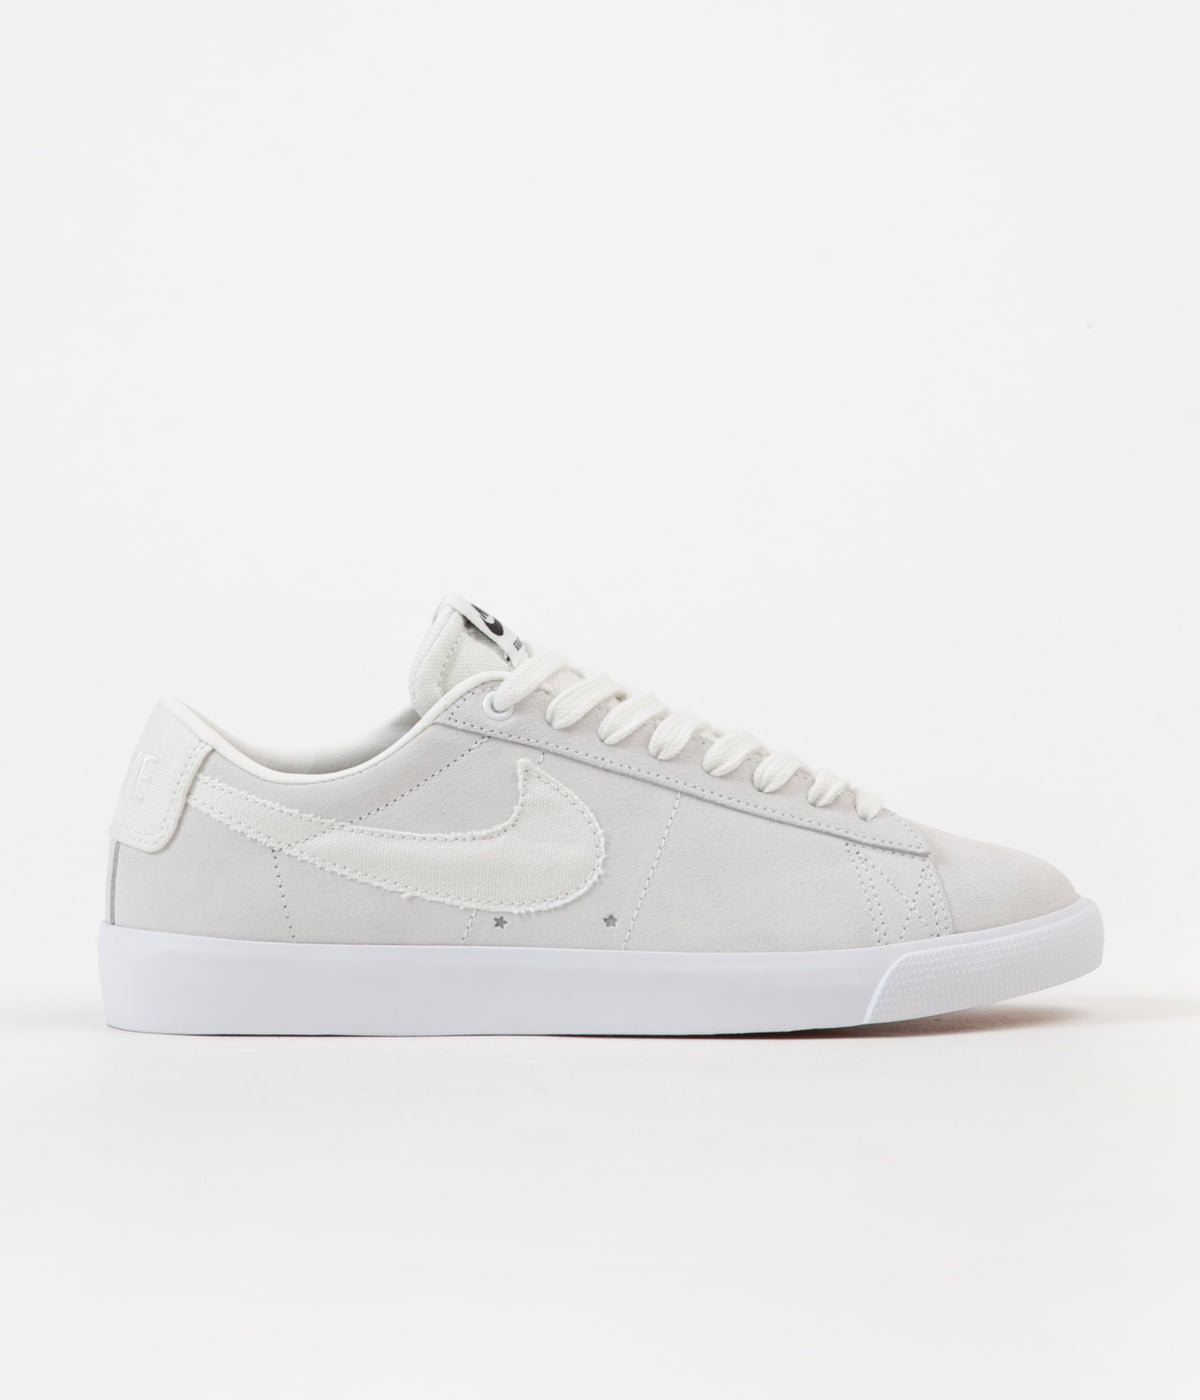 b3d99b7eed3a44 Nike SB Blazer Low GT Shoes - Summit White   Summit White - Obsidian ...